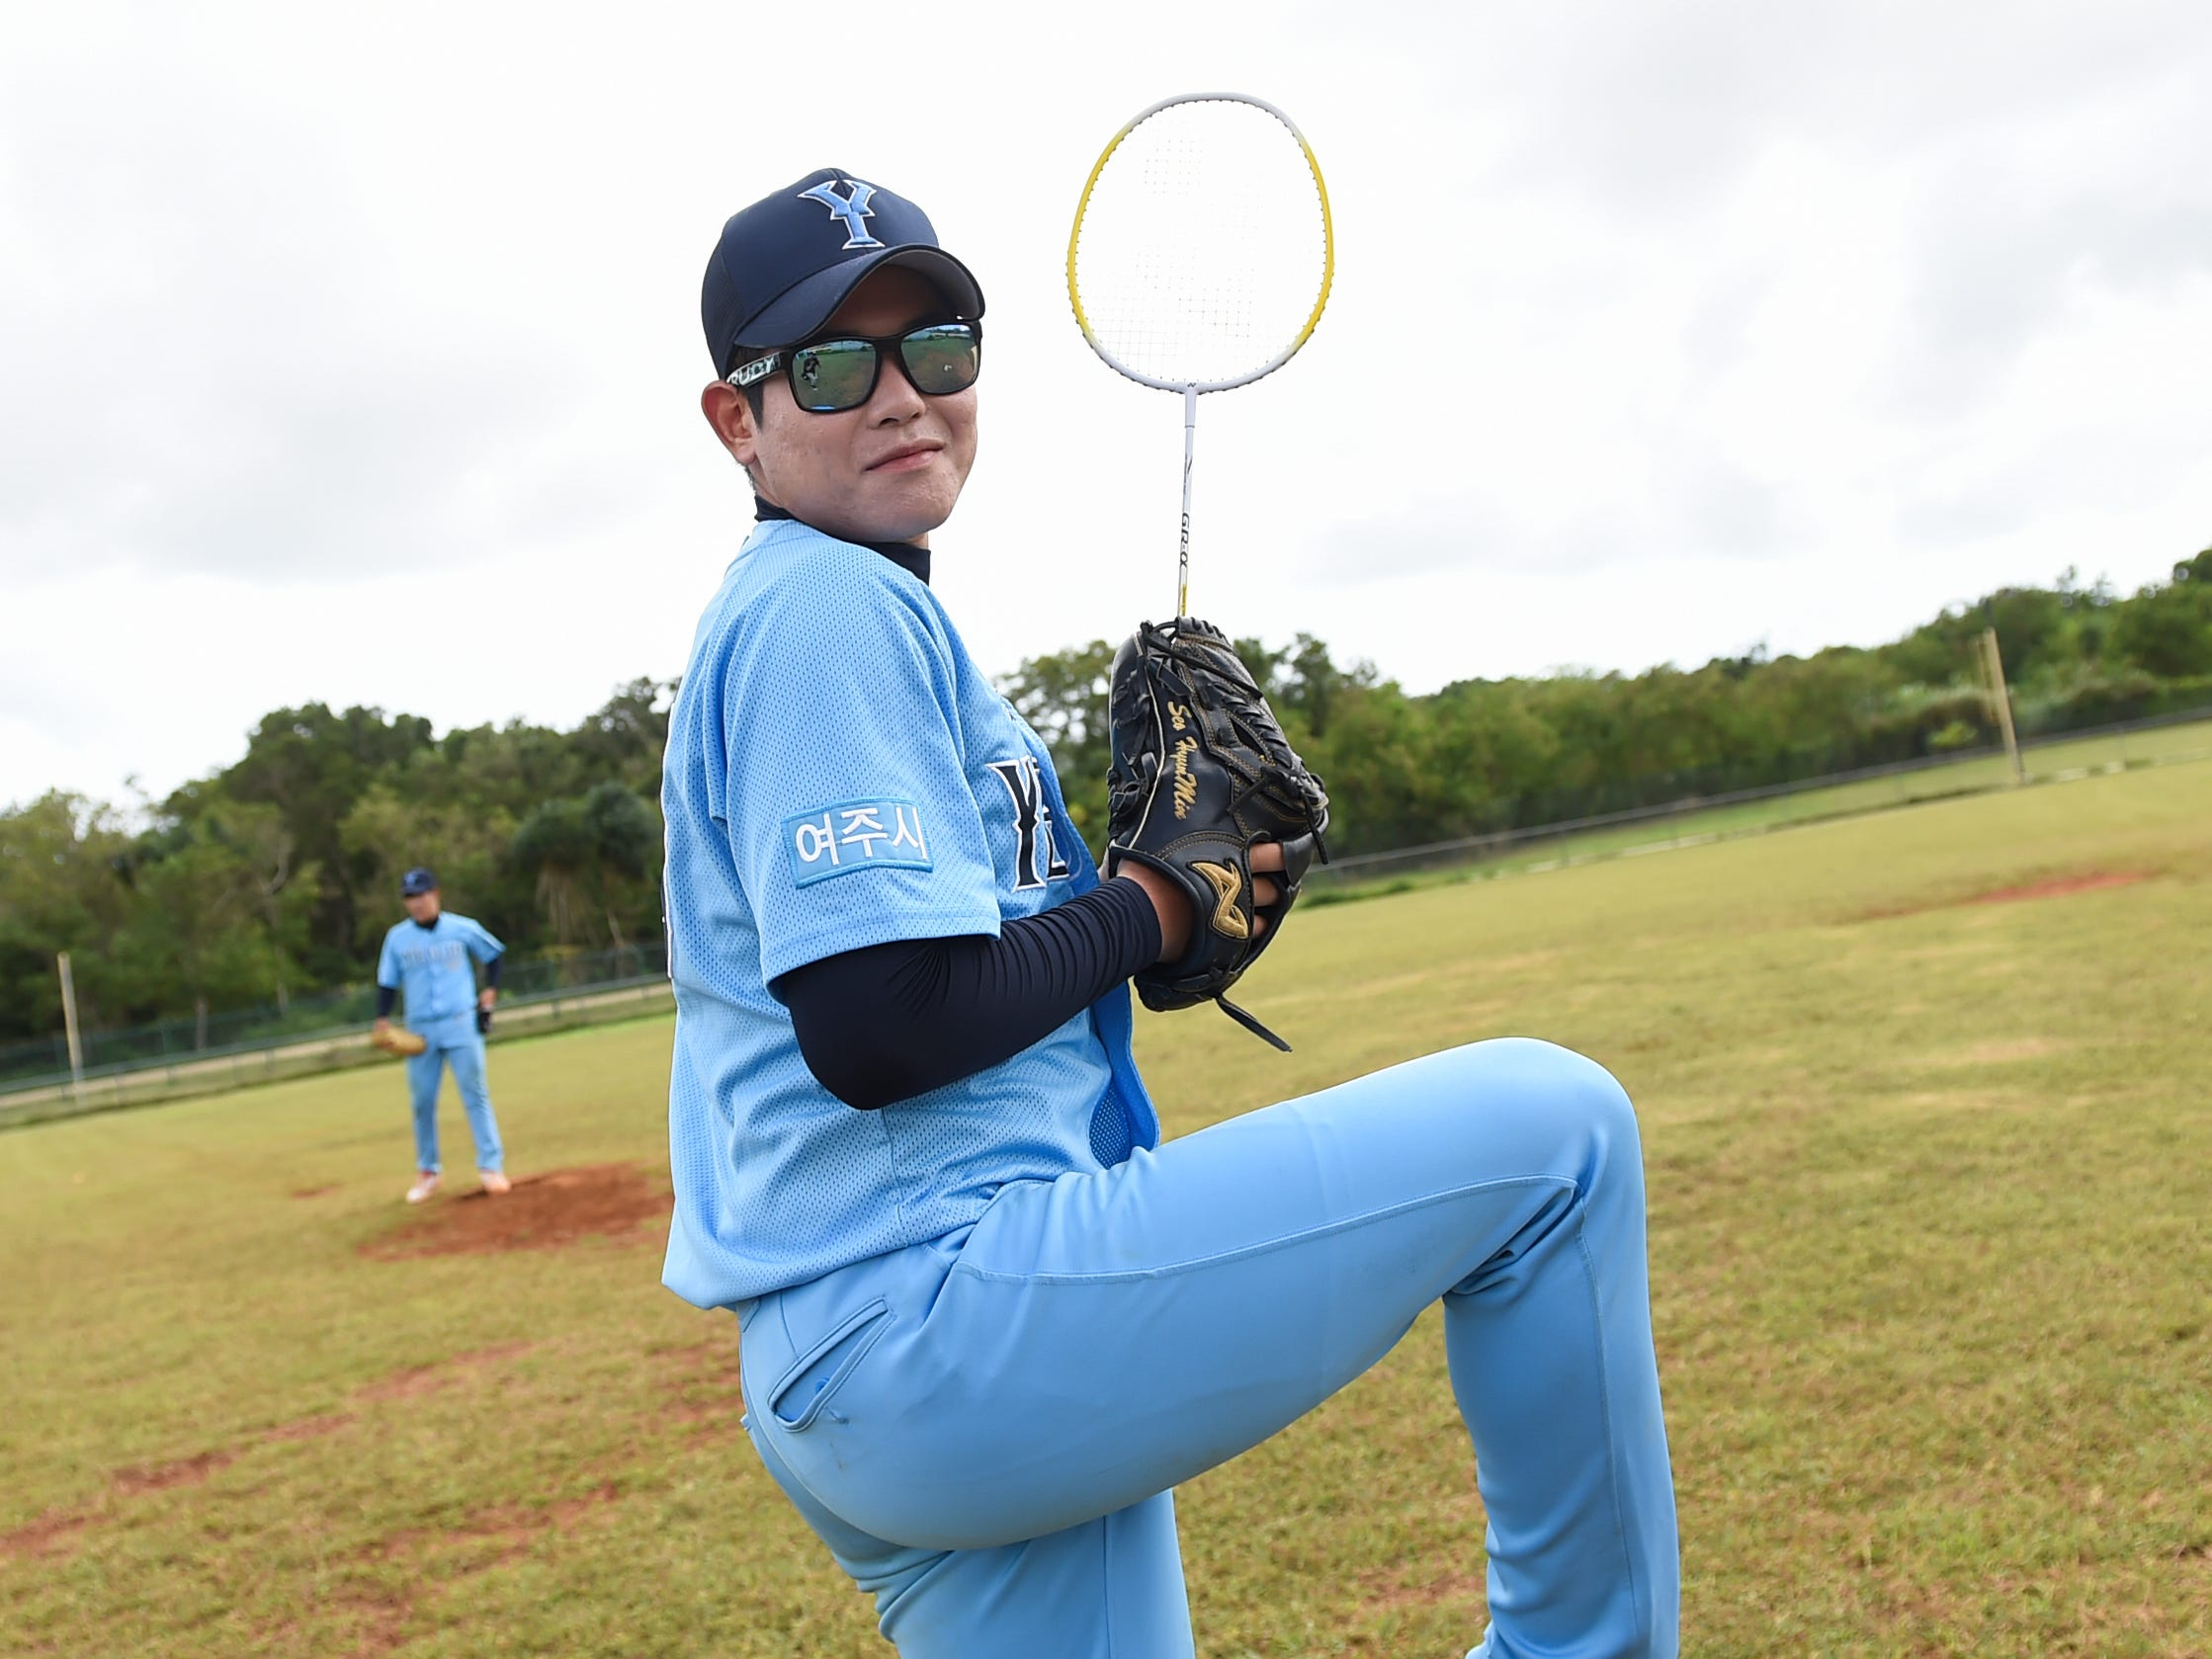 Hyun Min Seo, a Korean baseball player for the Yeoju University team, gives his best pitching pose during a winter training session at the Guam Sports Complex in Dededo, Feb. 11, 2019.